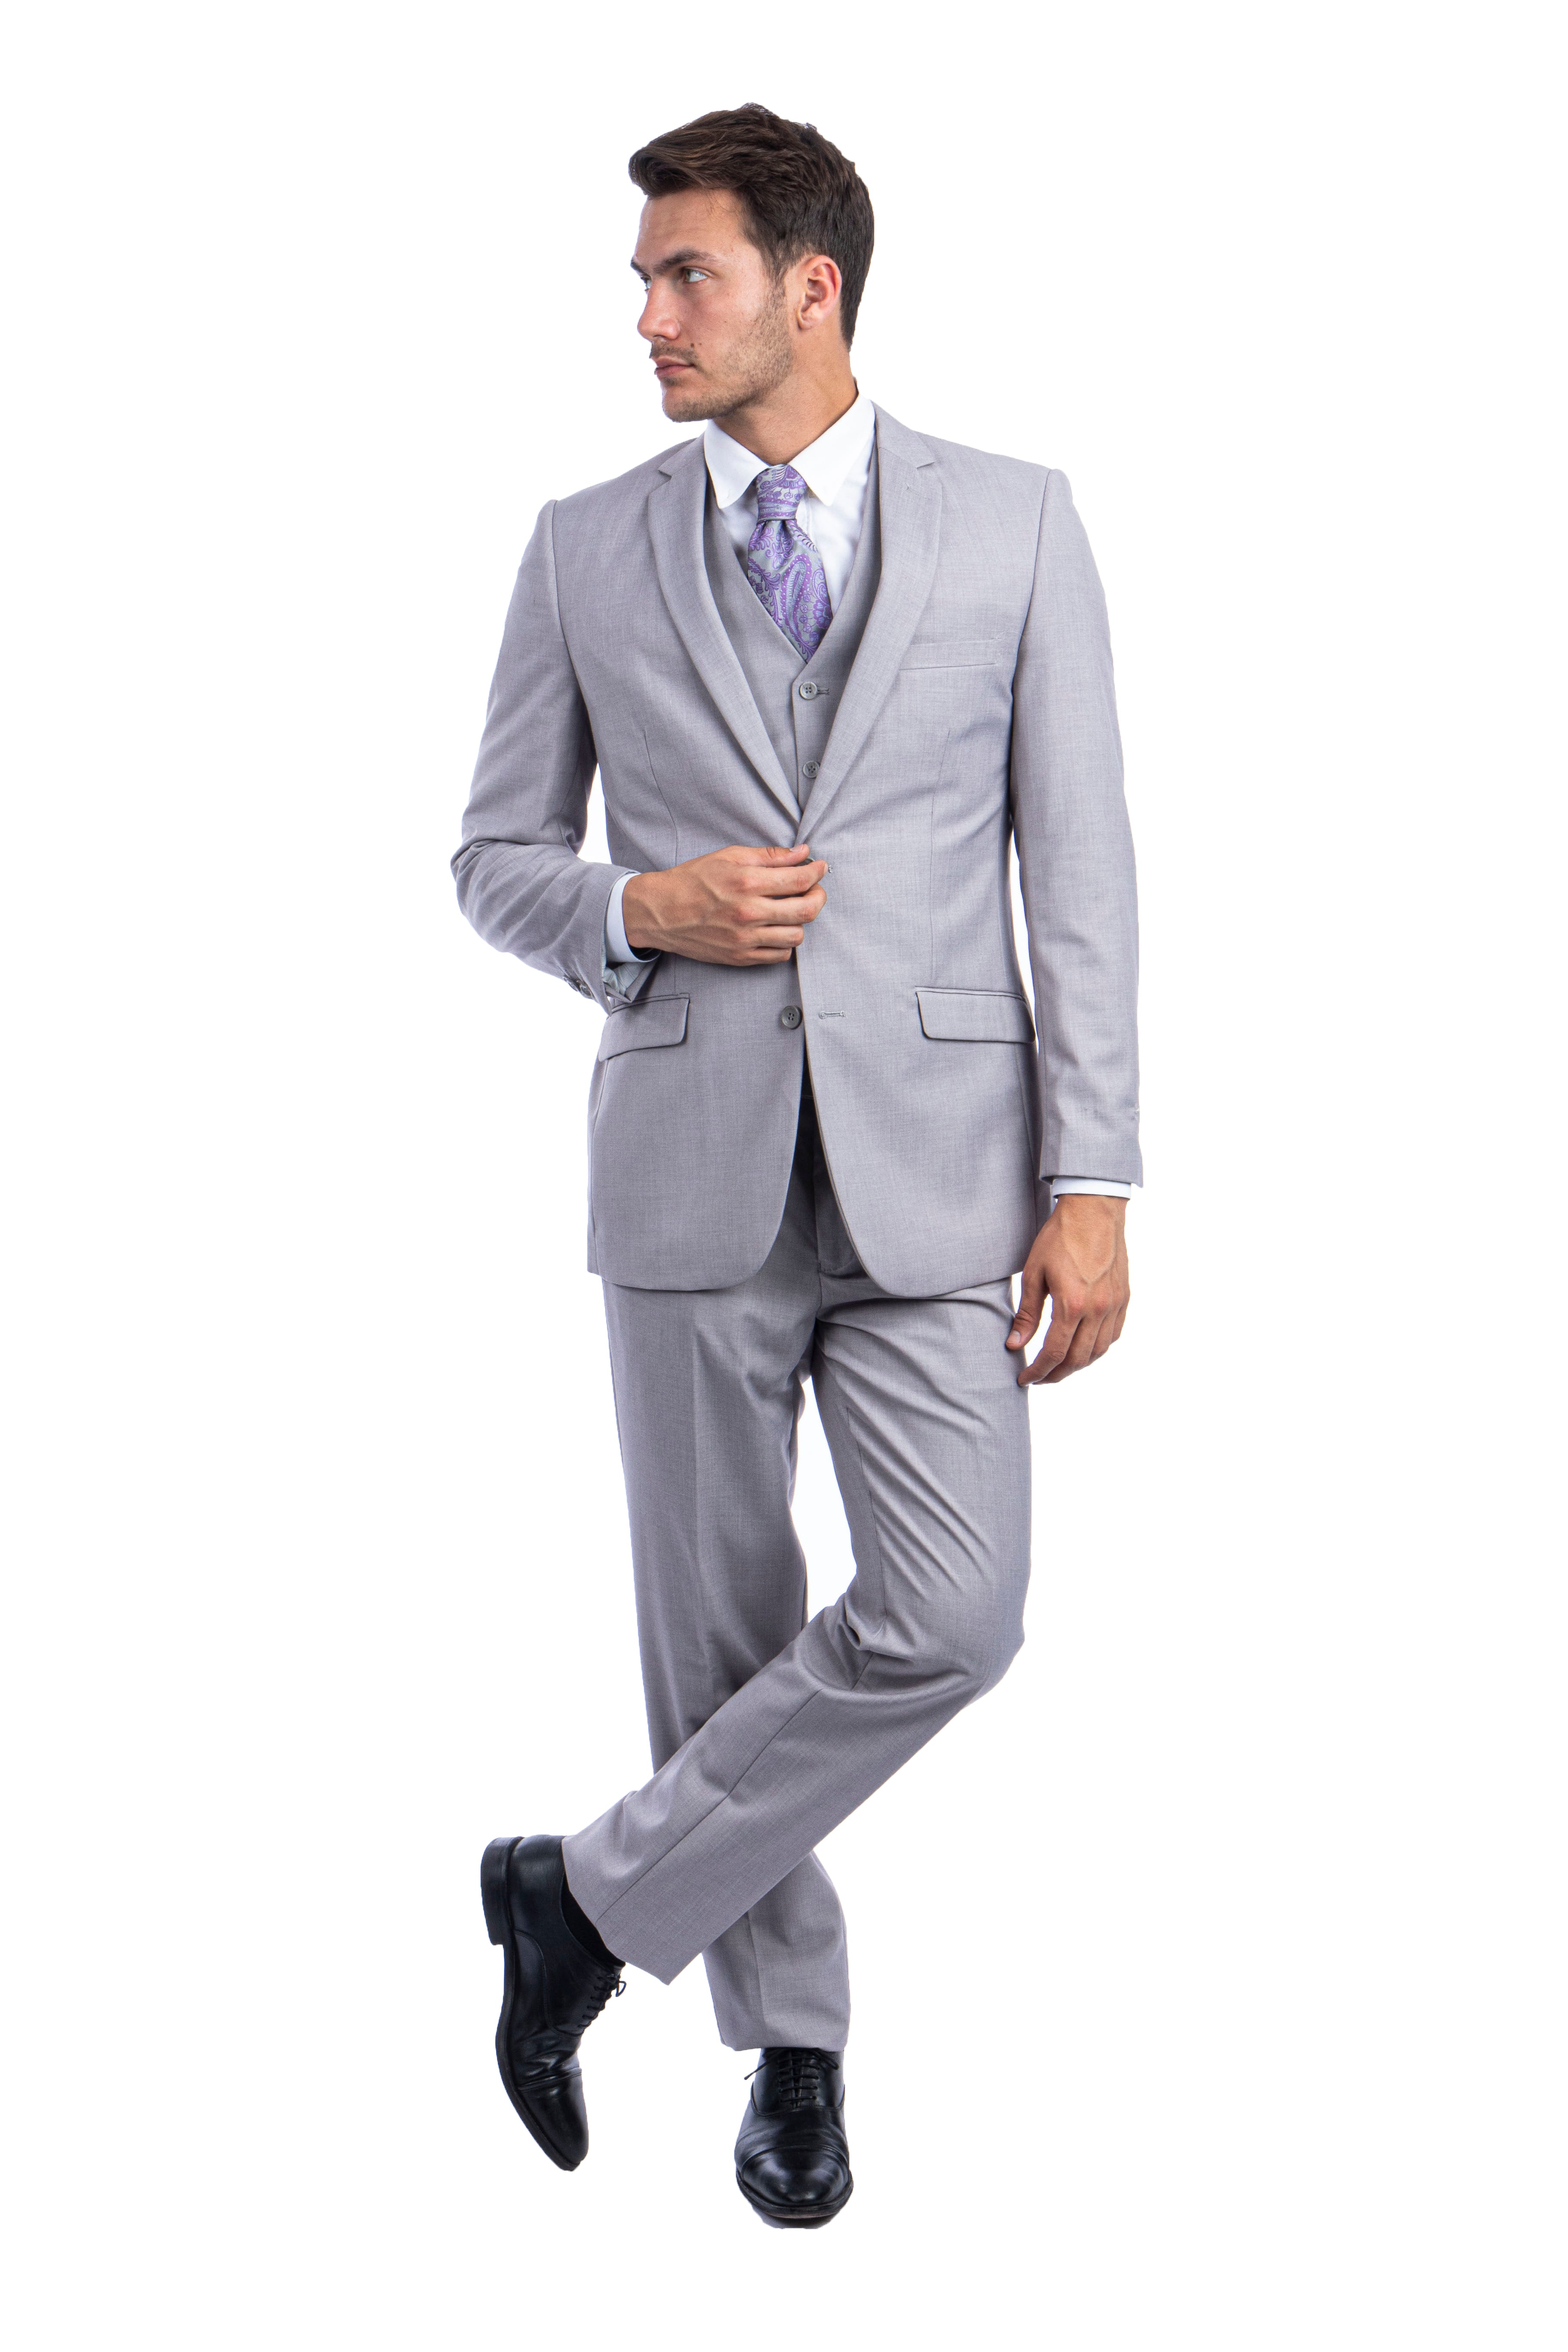 Lt.Grey Suit For Men Formal Suits For All Ocassions